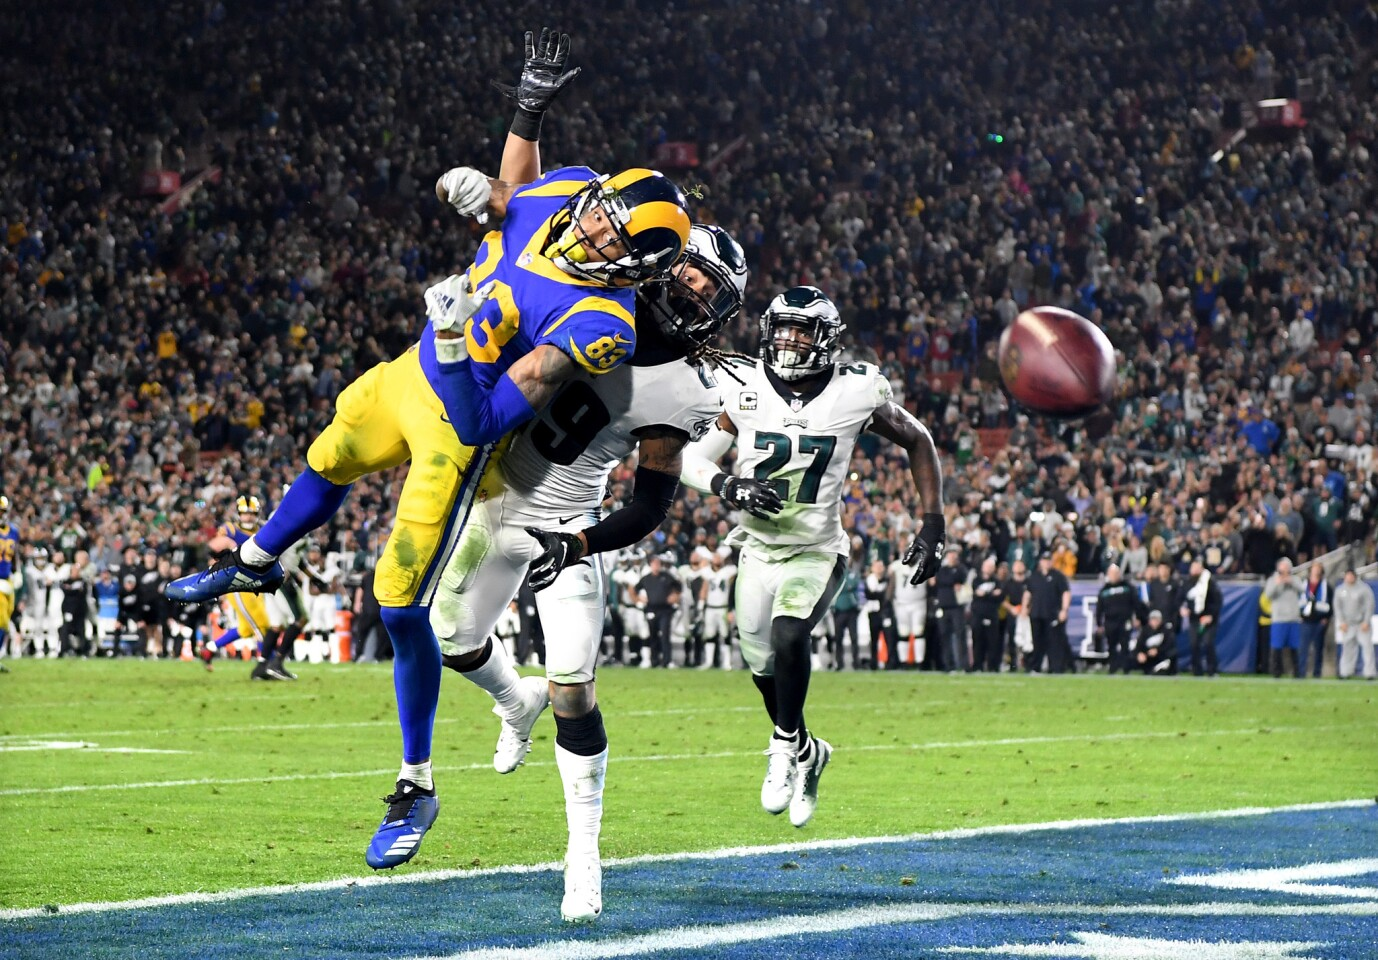 Rams receiver Josh Reynolds can't make the catch on the game's final play.